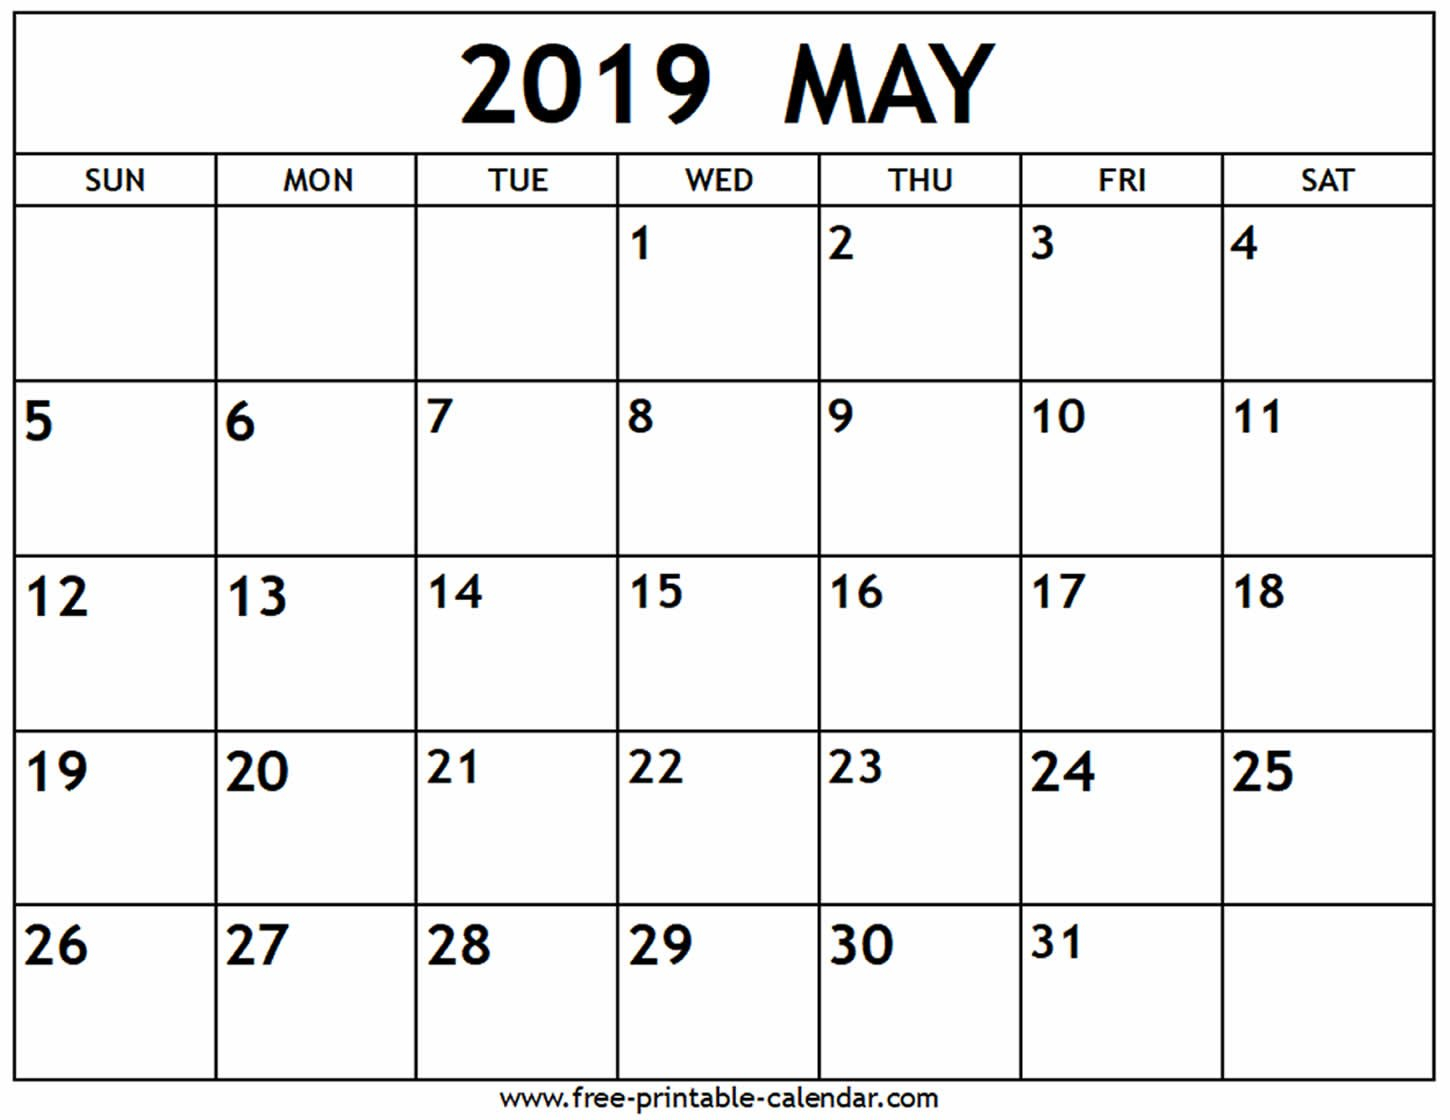 Printable May 2019 Calendar Free (4) | Download 2019 Calendar May 4 2019 Calendar